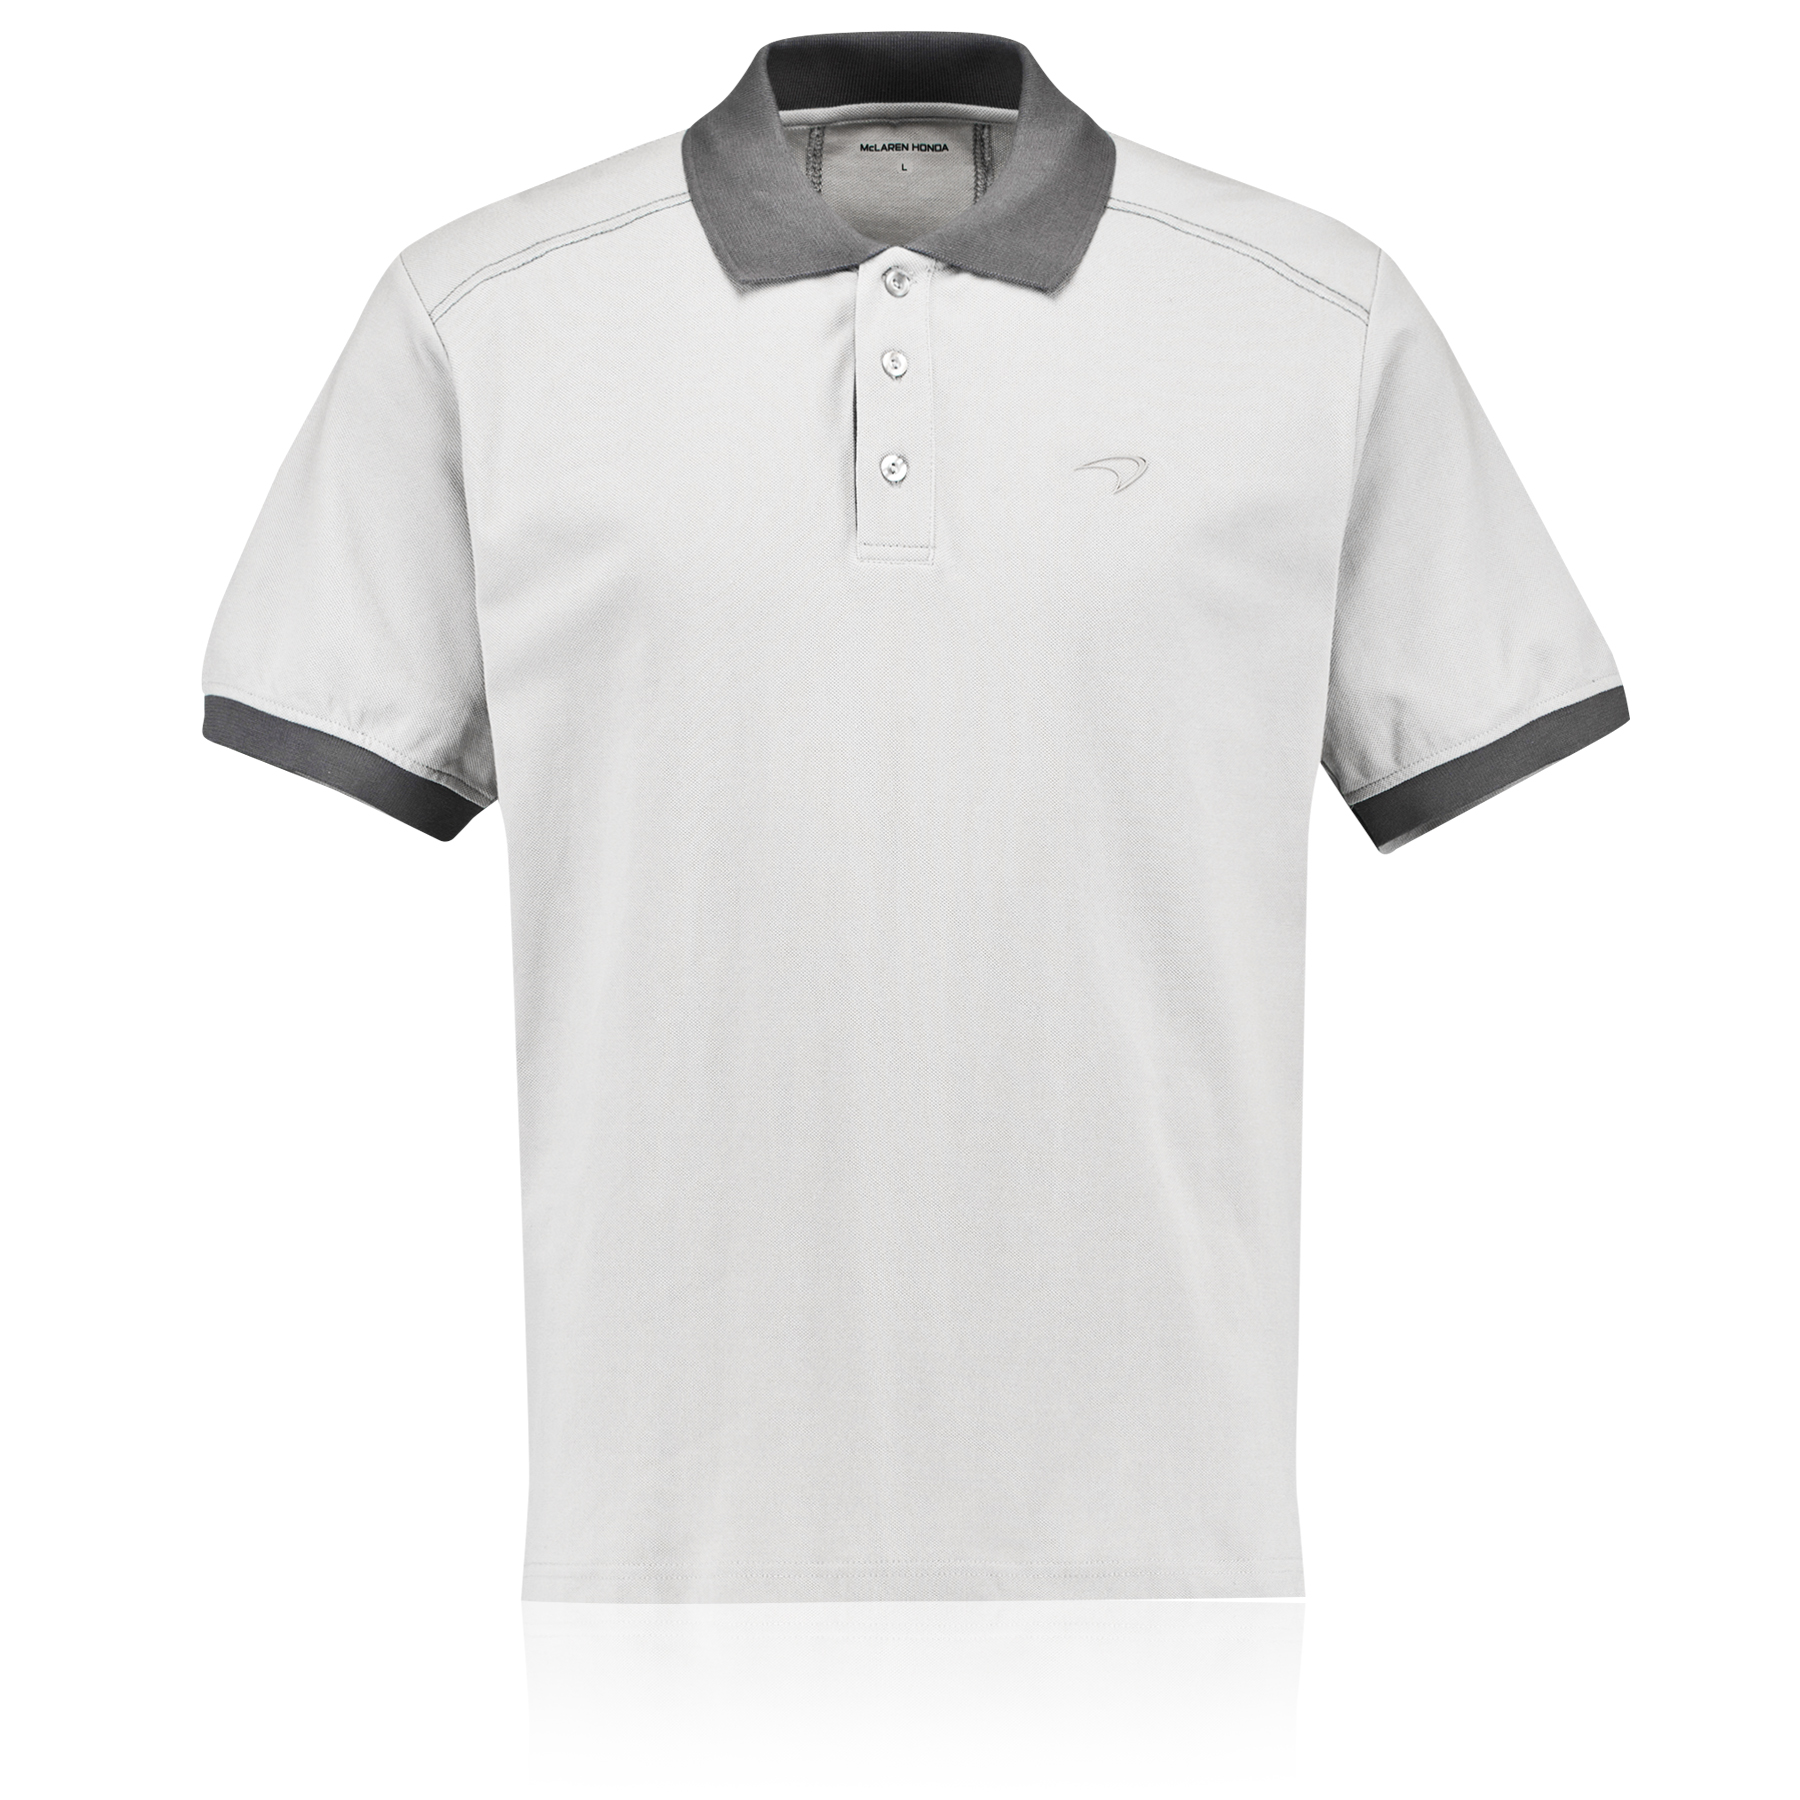 Gifts for Men|Formula 1|Other|Men's McLaren Honda Signature Polo Grey